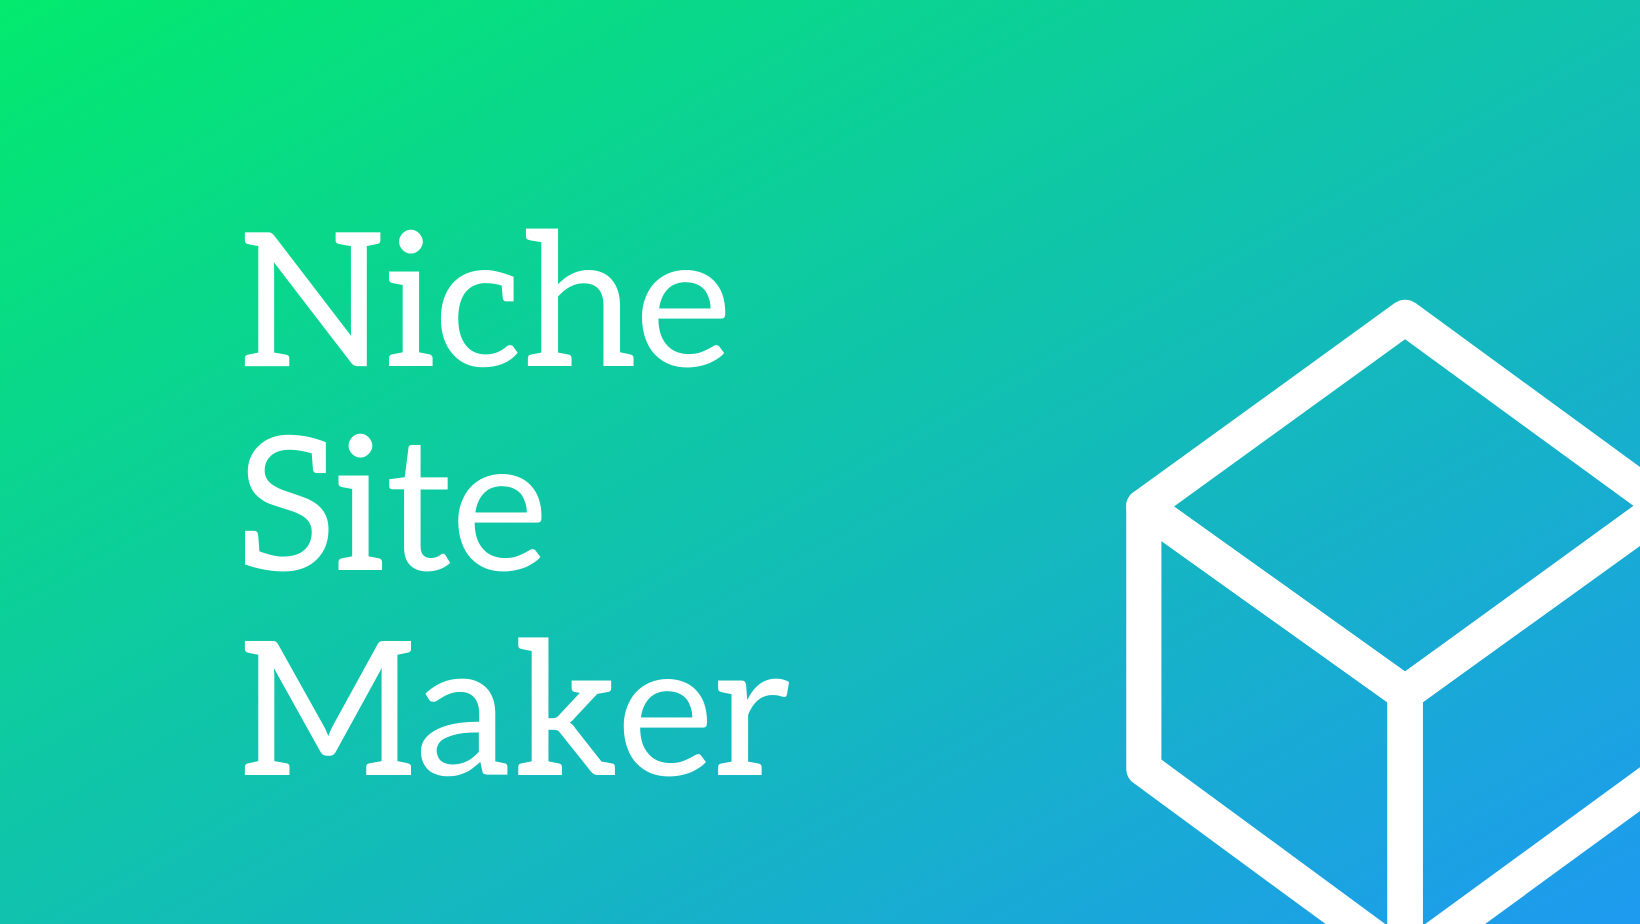 Niche Site Maker - Simply build niche affiliate websites